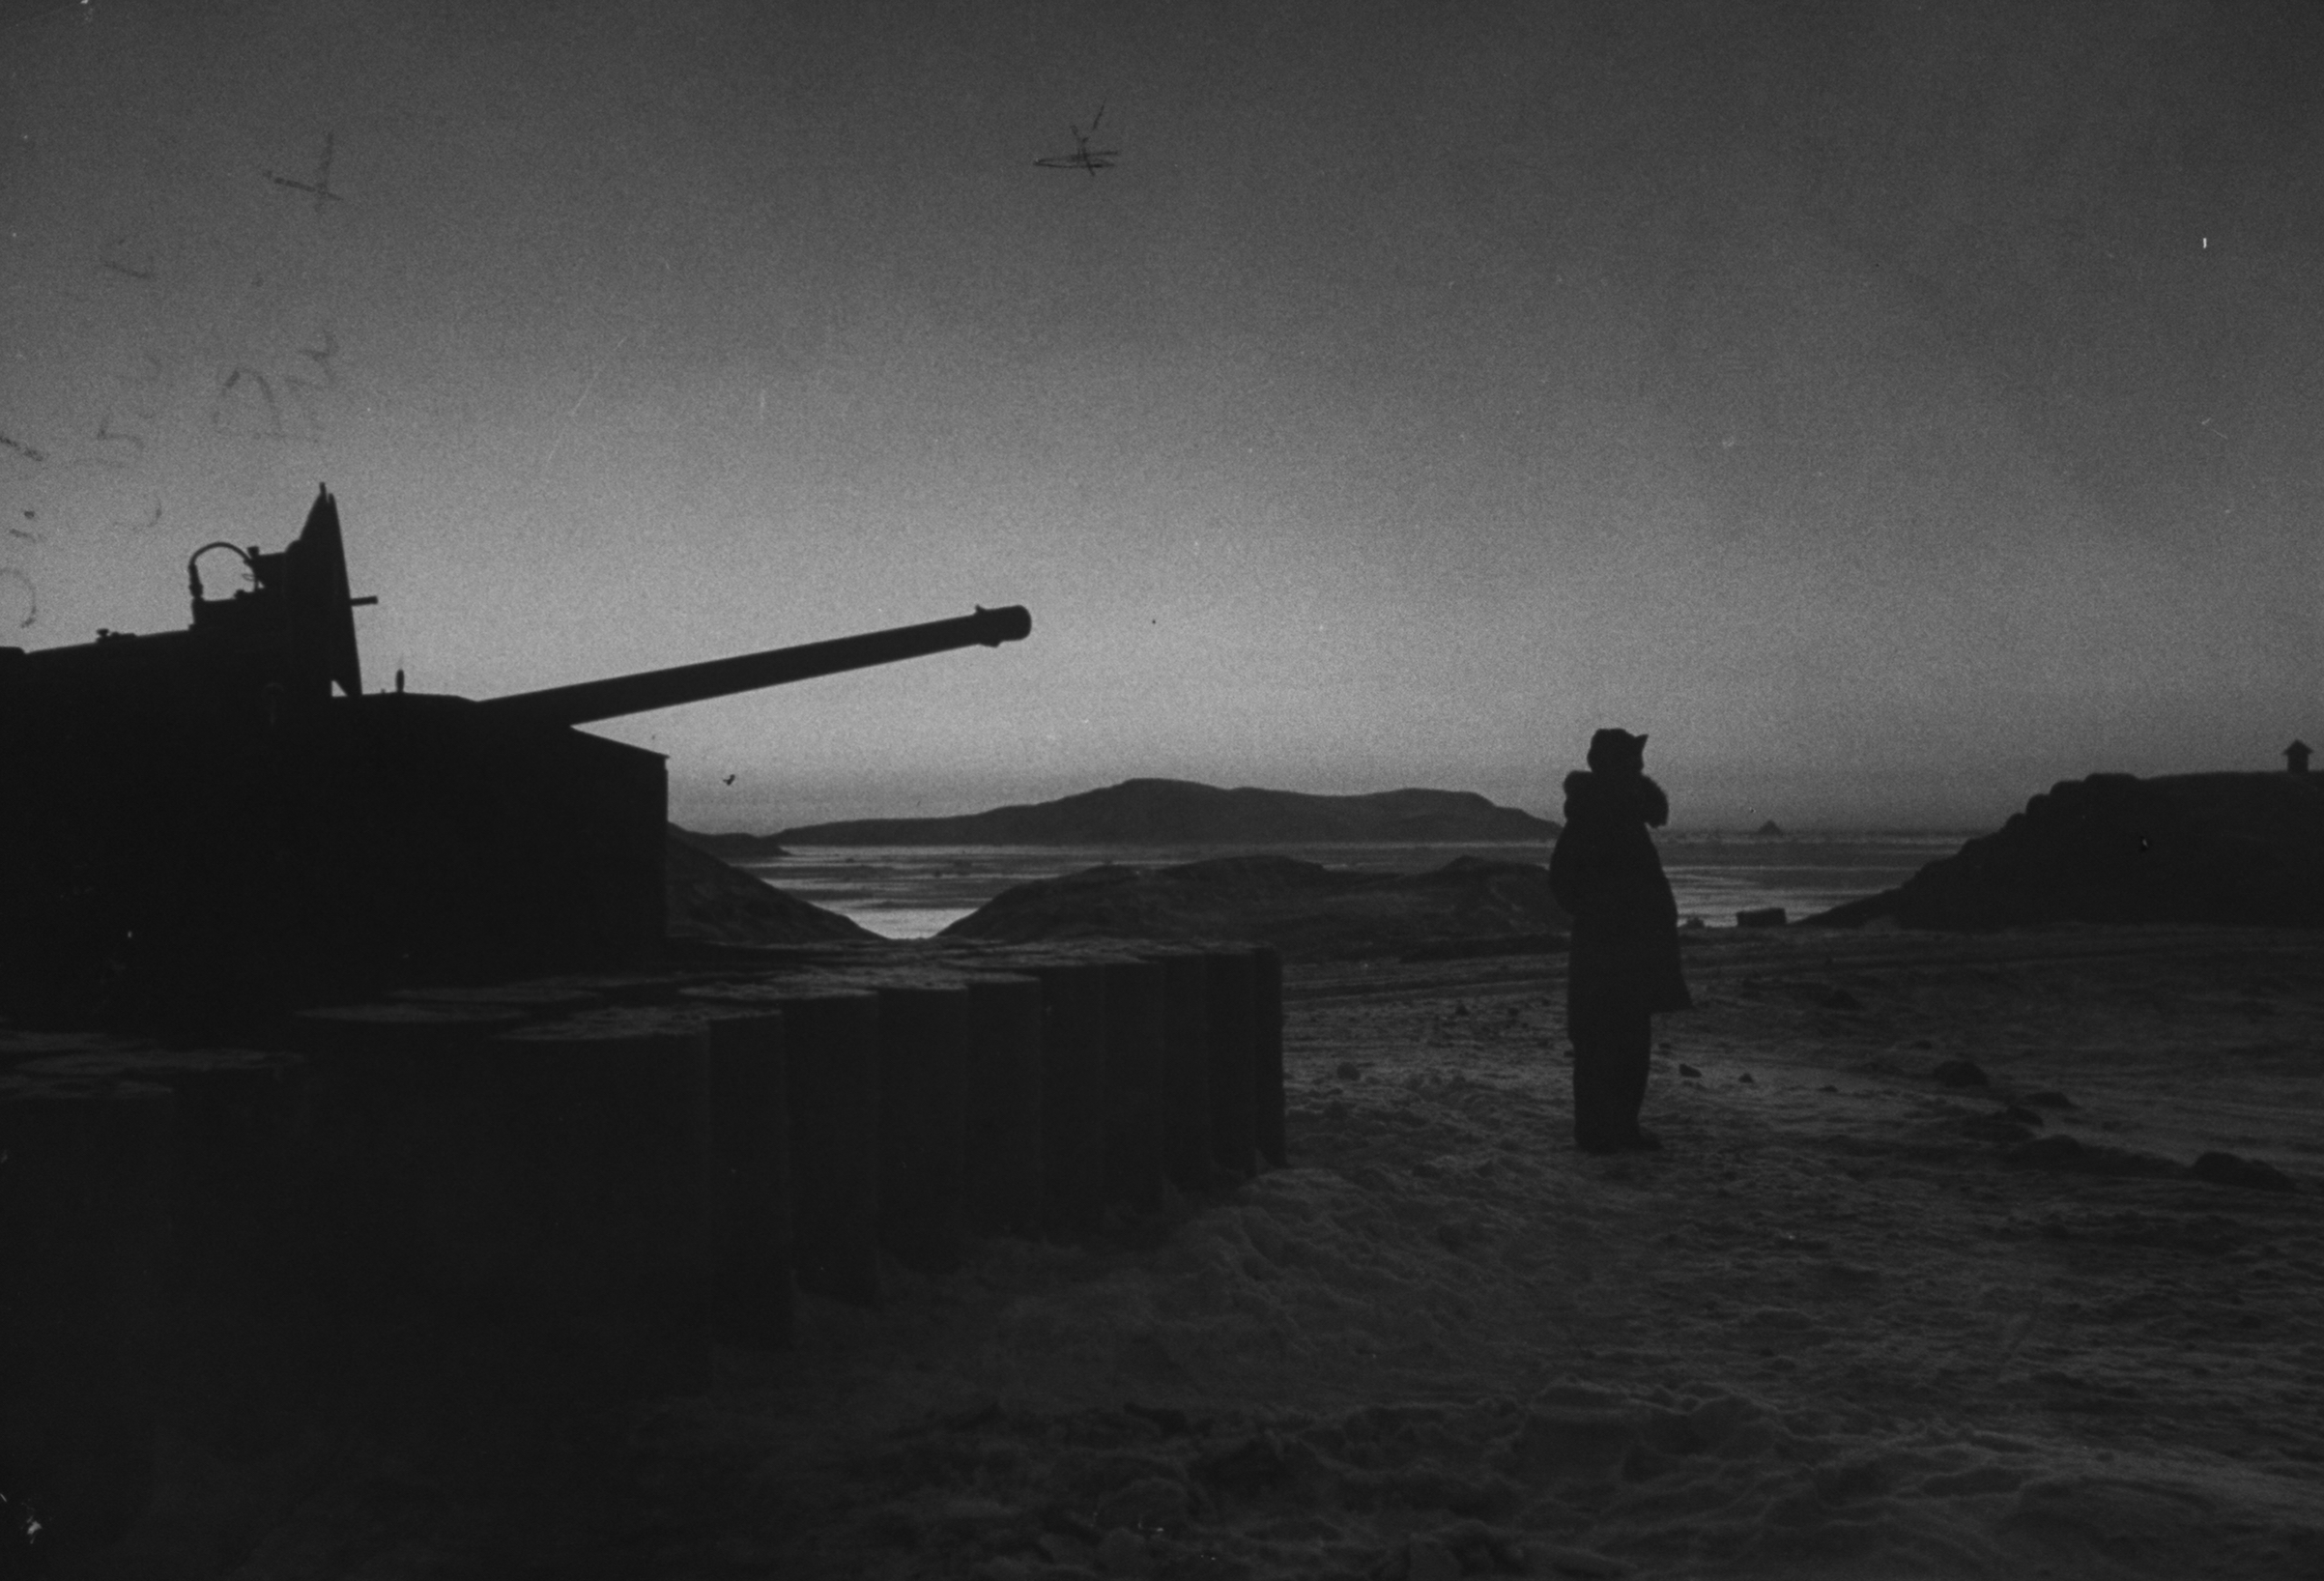 Antiaircraft gun such as this one guarded by an artilleryman in 1953 formed part of Thule Air base's intensive armament system and were manned on a 24-hour basis